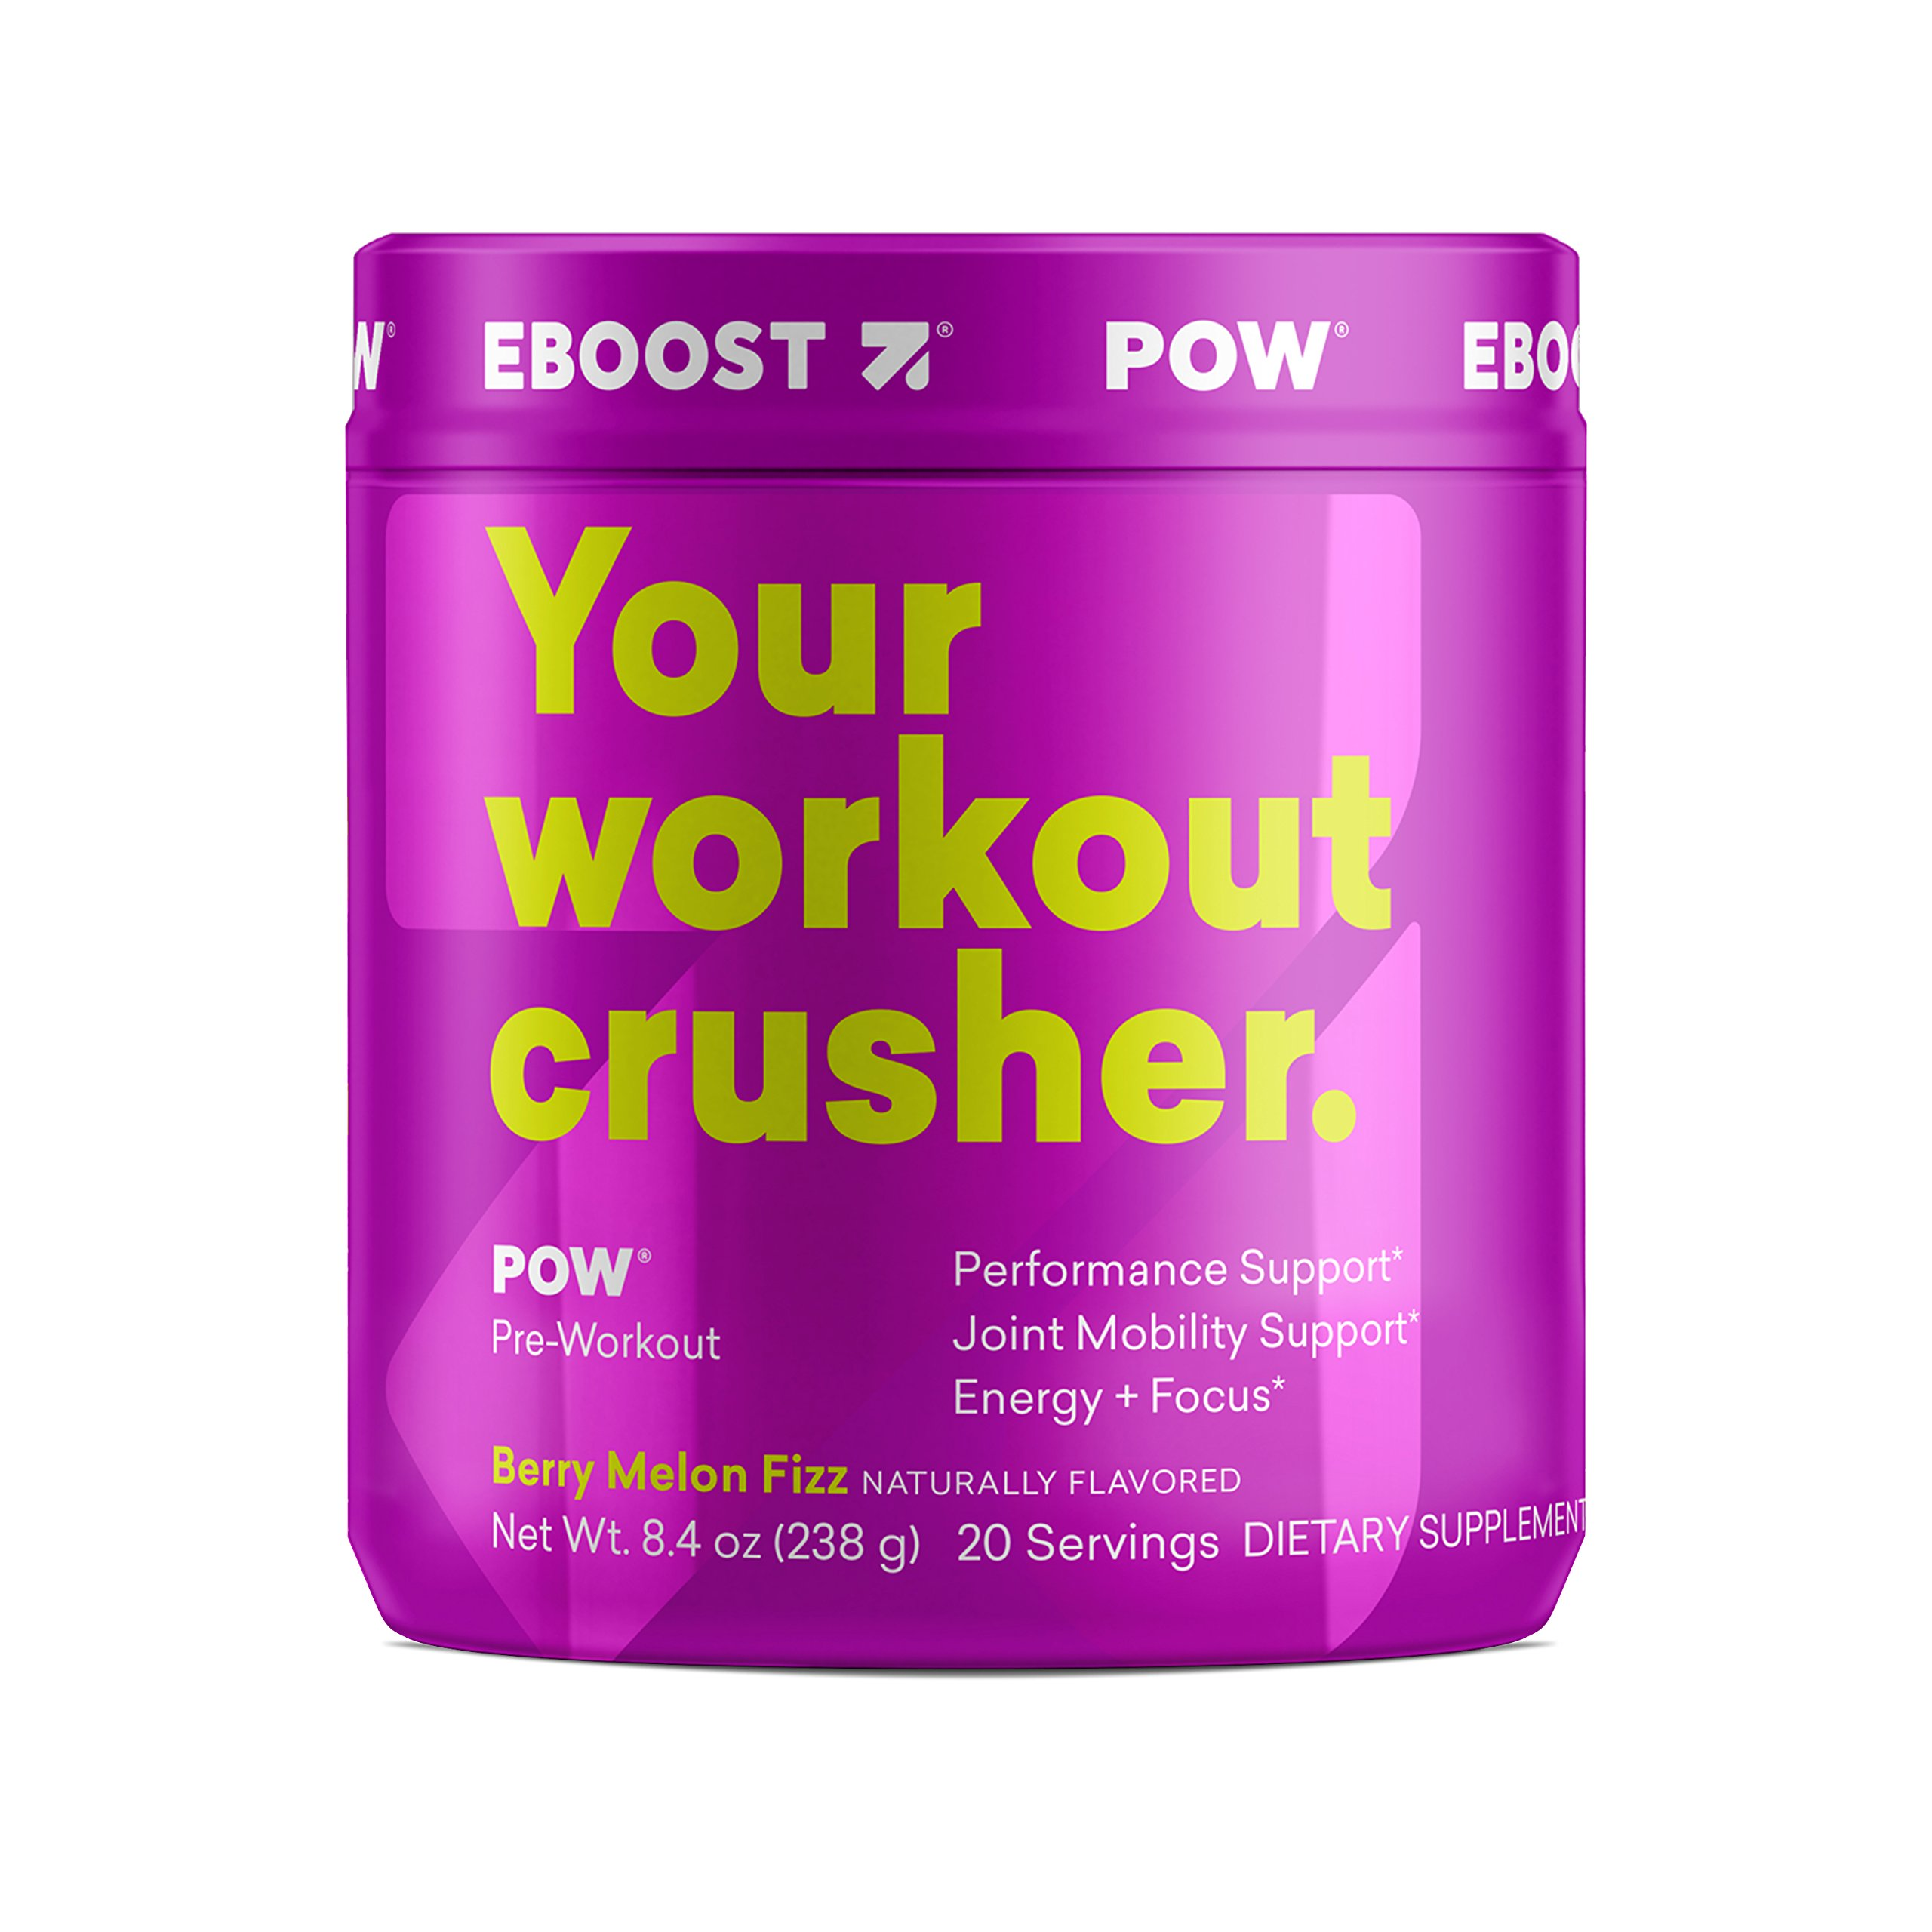 EBOOST POW Natural Pre-Workout Powder | Maximize Workouts & Recover Faster Smoother- Berry Melon Fizz Flavor (20 Servingsper Tub)